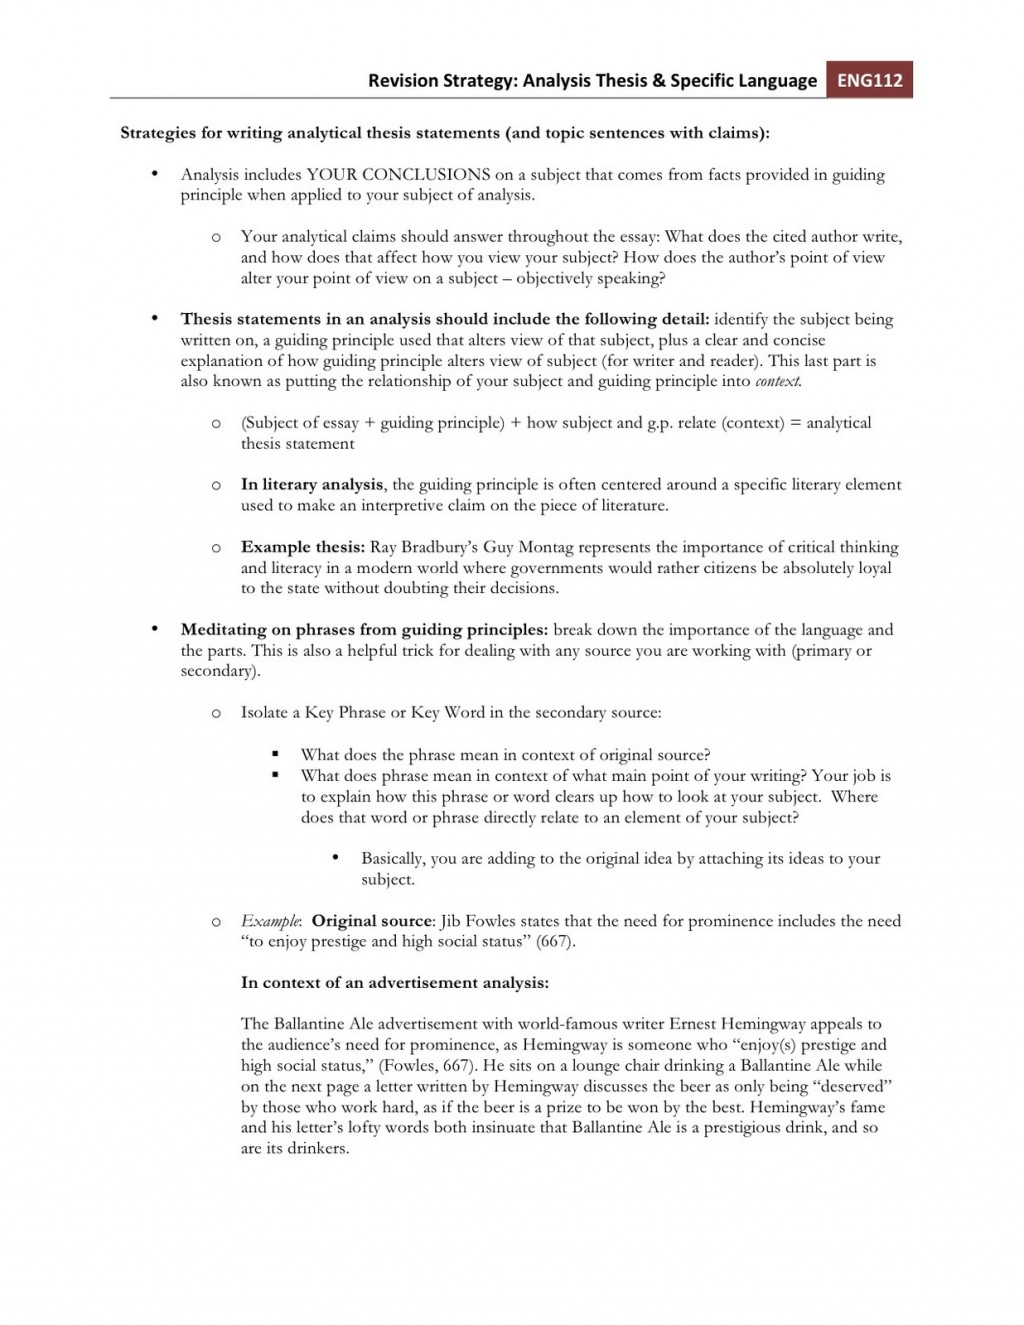 006 Strategiesforwritinganalyticalthesisstatements Essay Example Phenomenal Eslrs Large